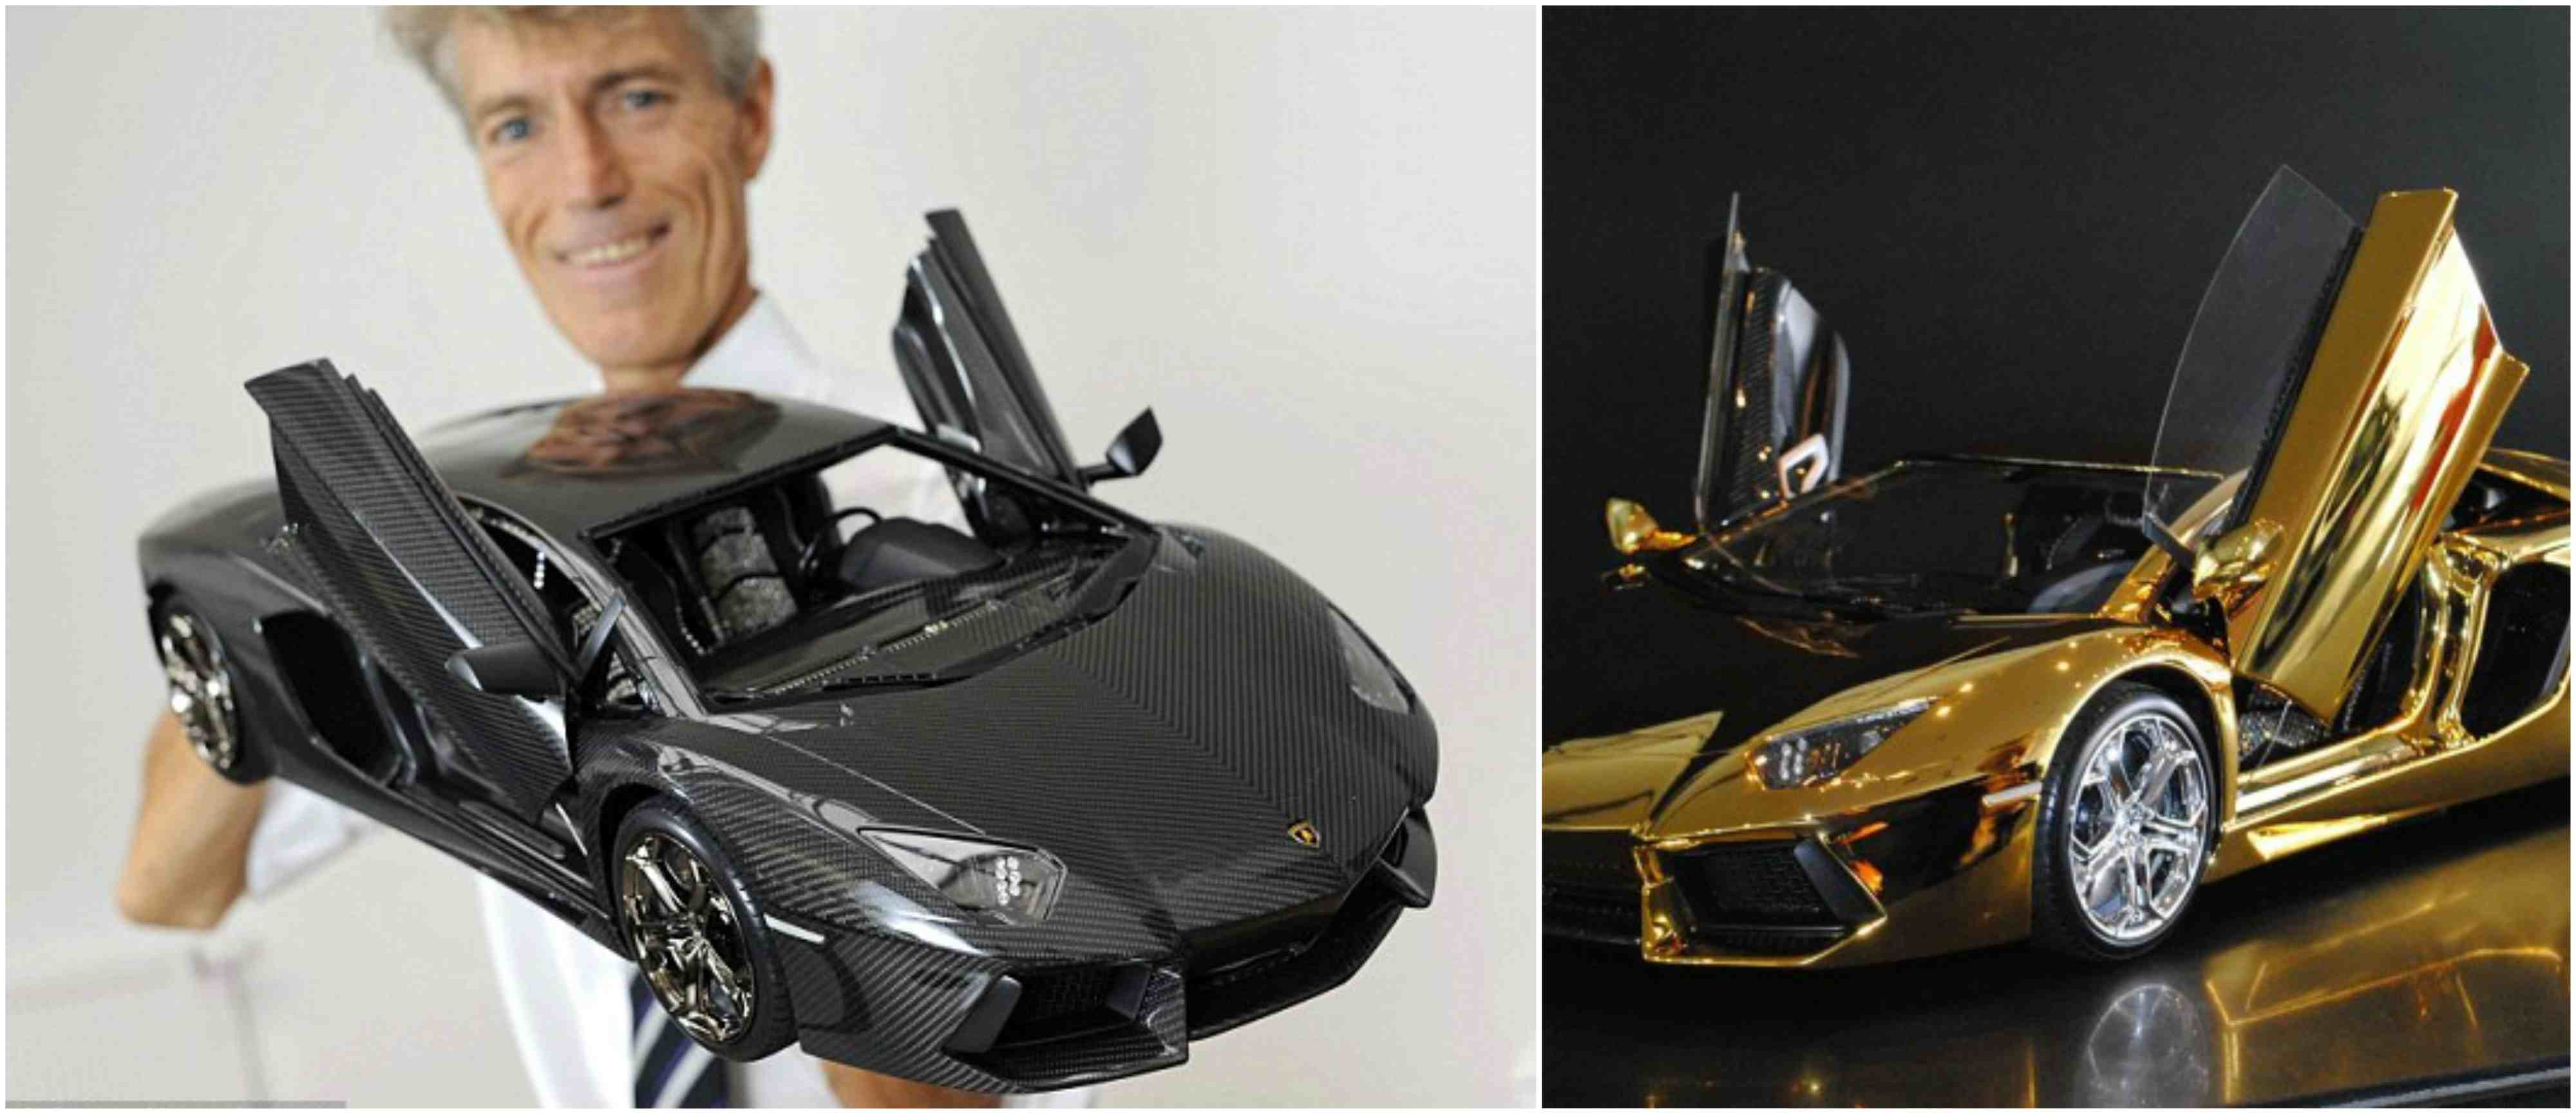 Top 10 Most Expensive Toys in The World 2018